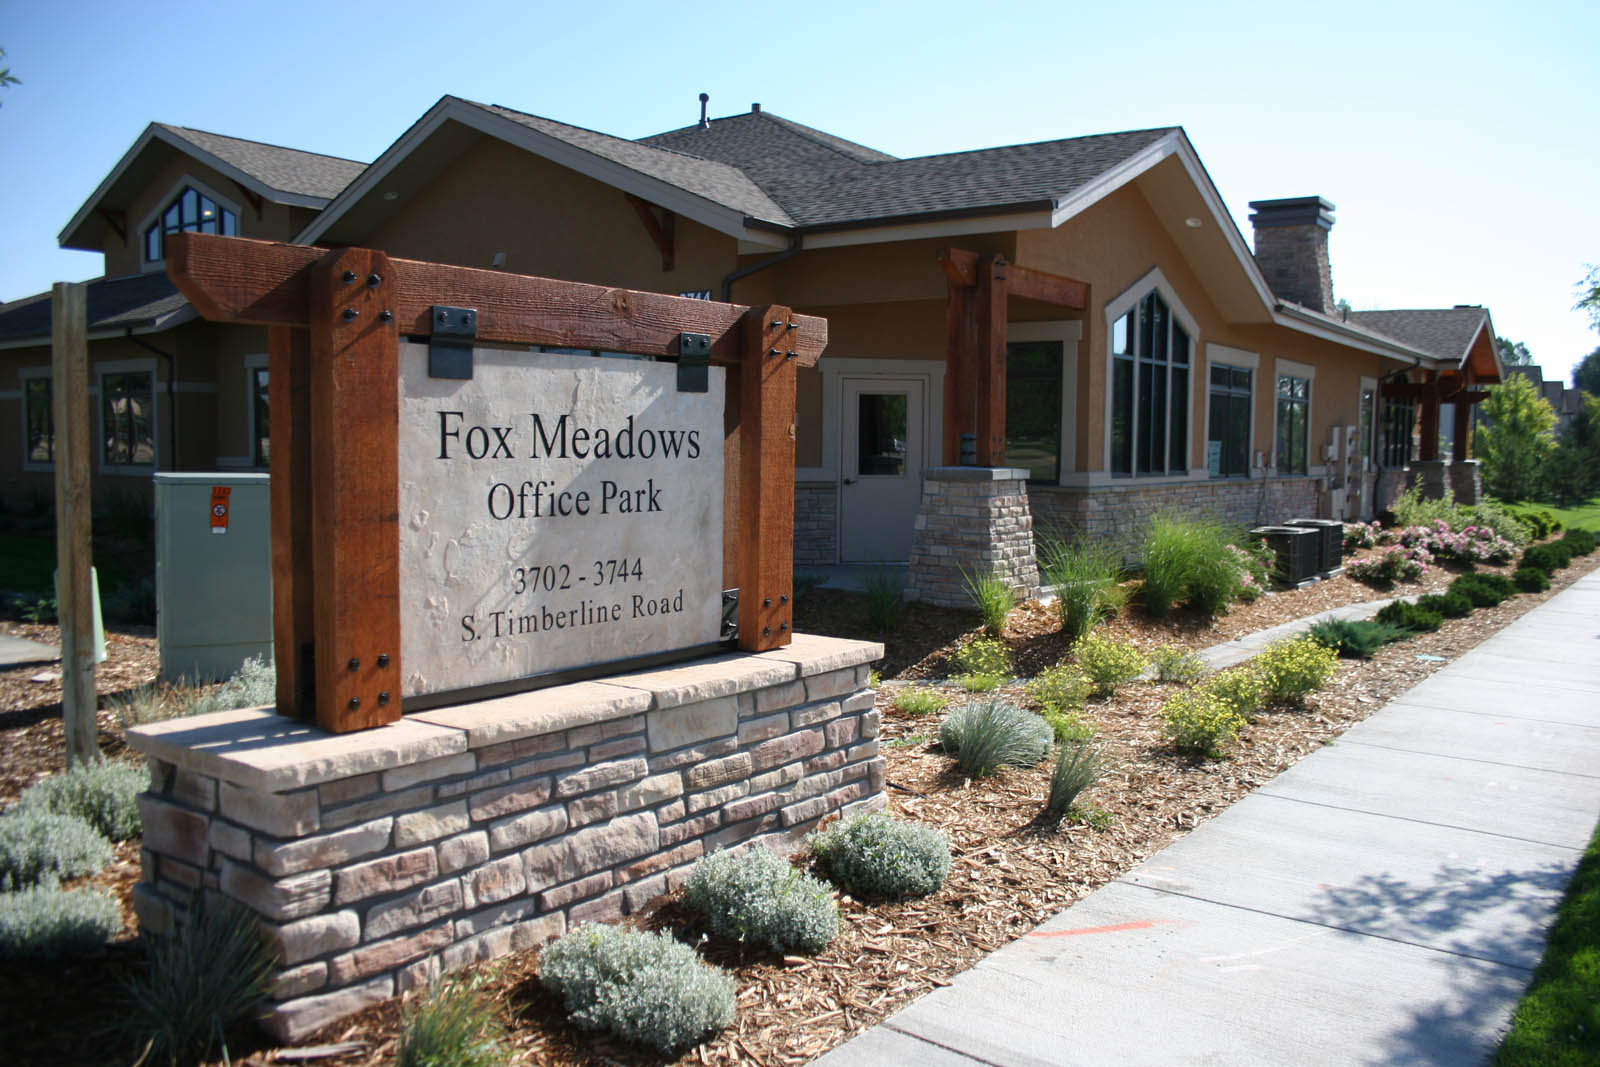 Fox Meadows Office Park entry